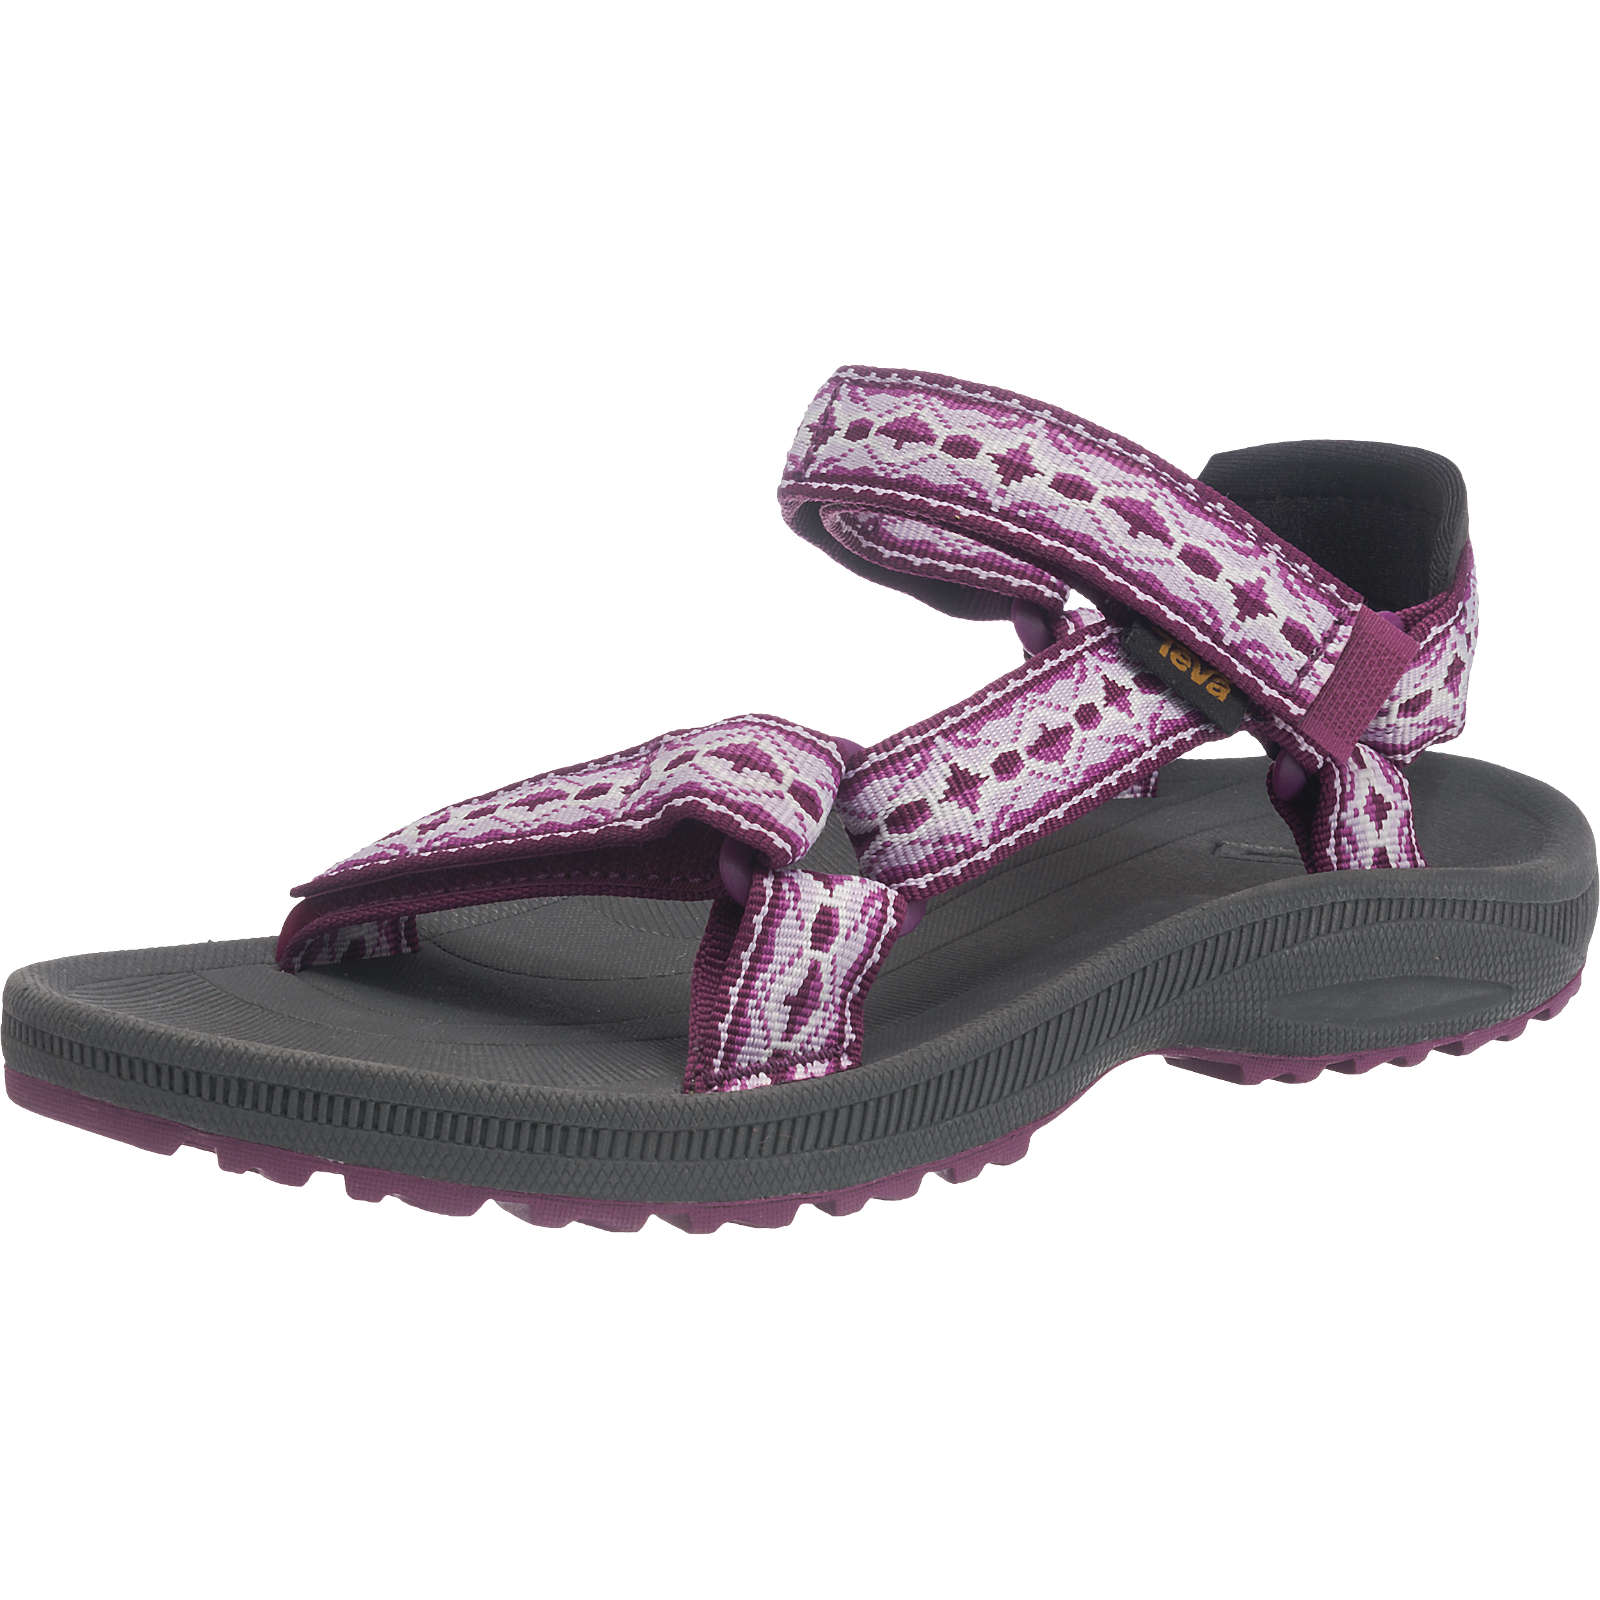 Teva Winsted Outdoorsandalen lila-kombi Damen Gr. 39